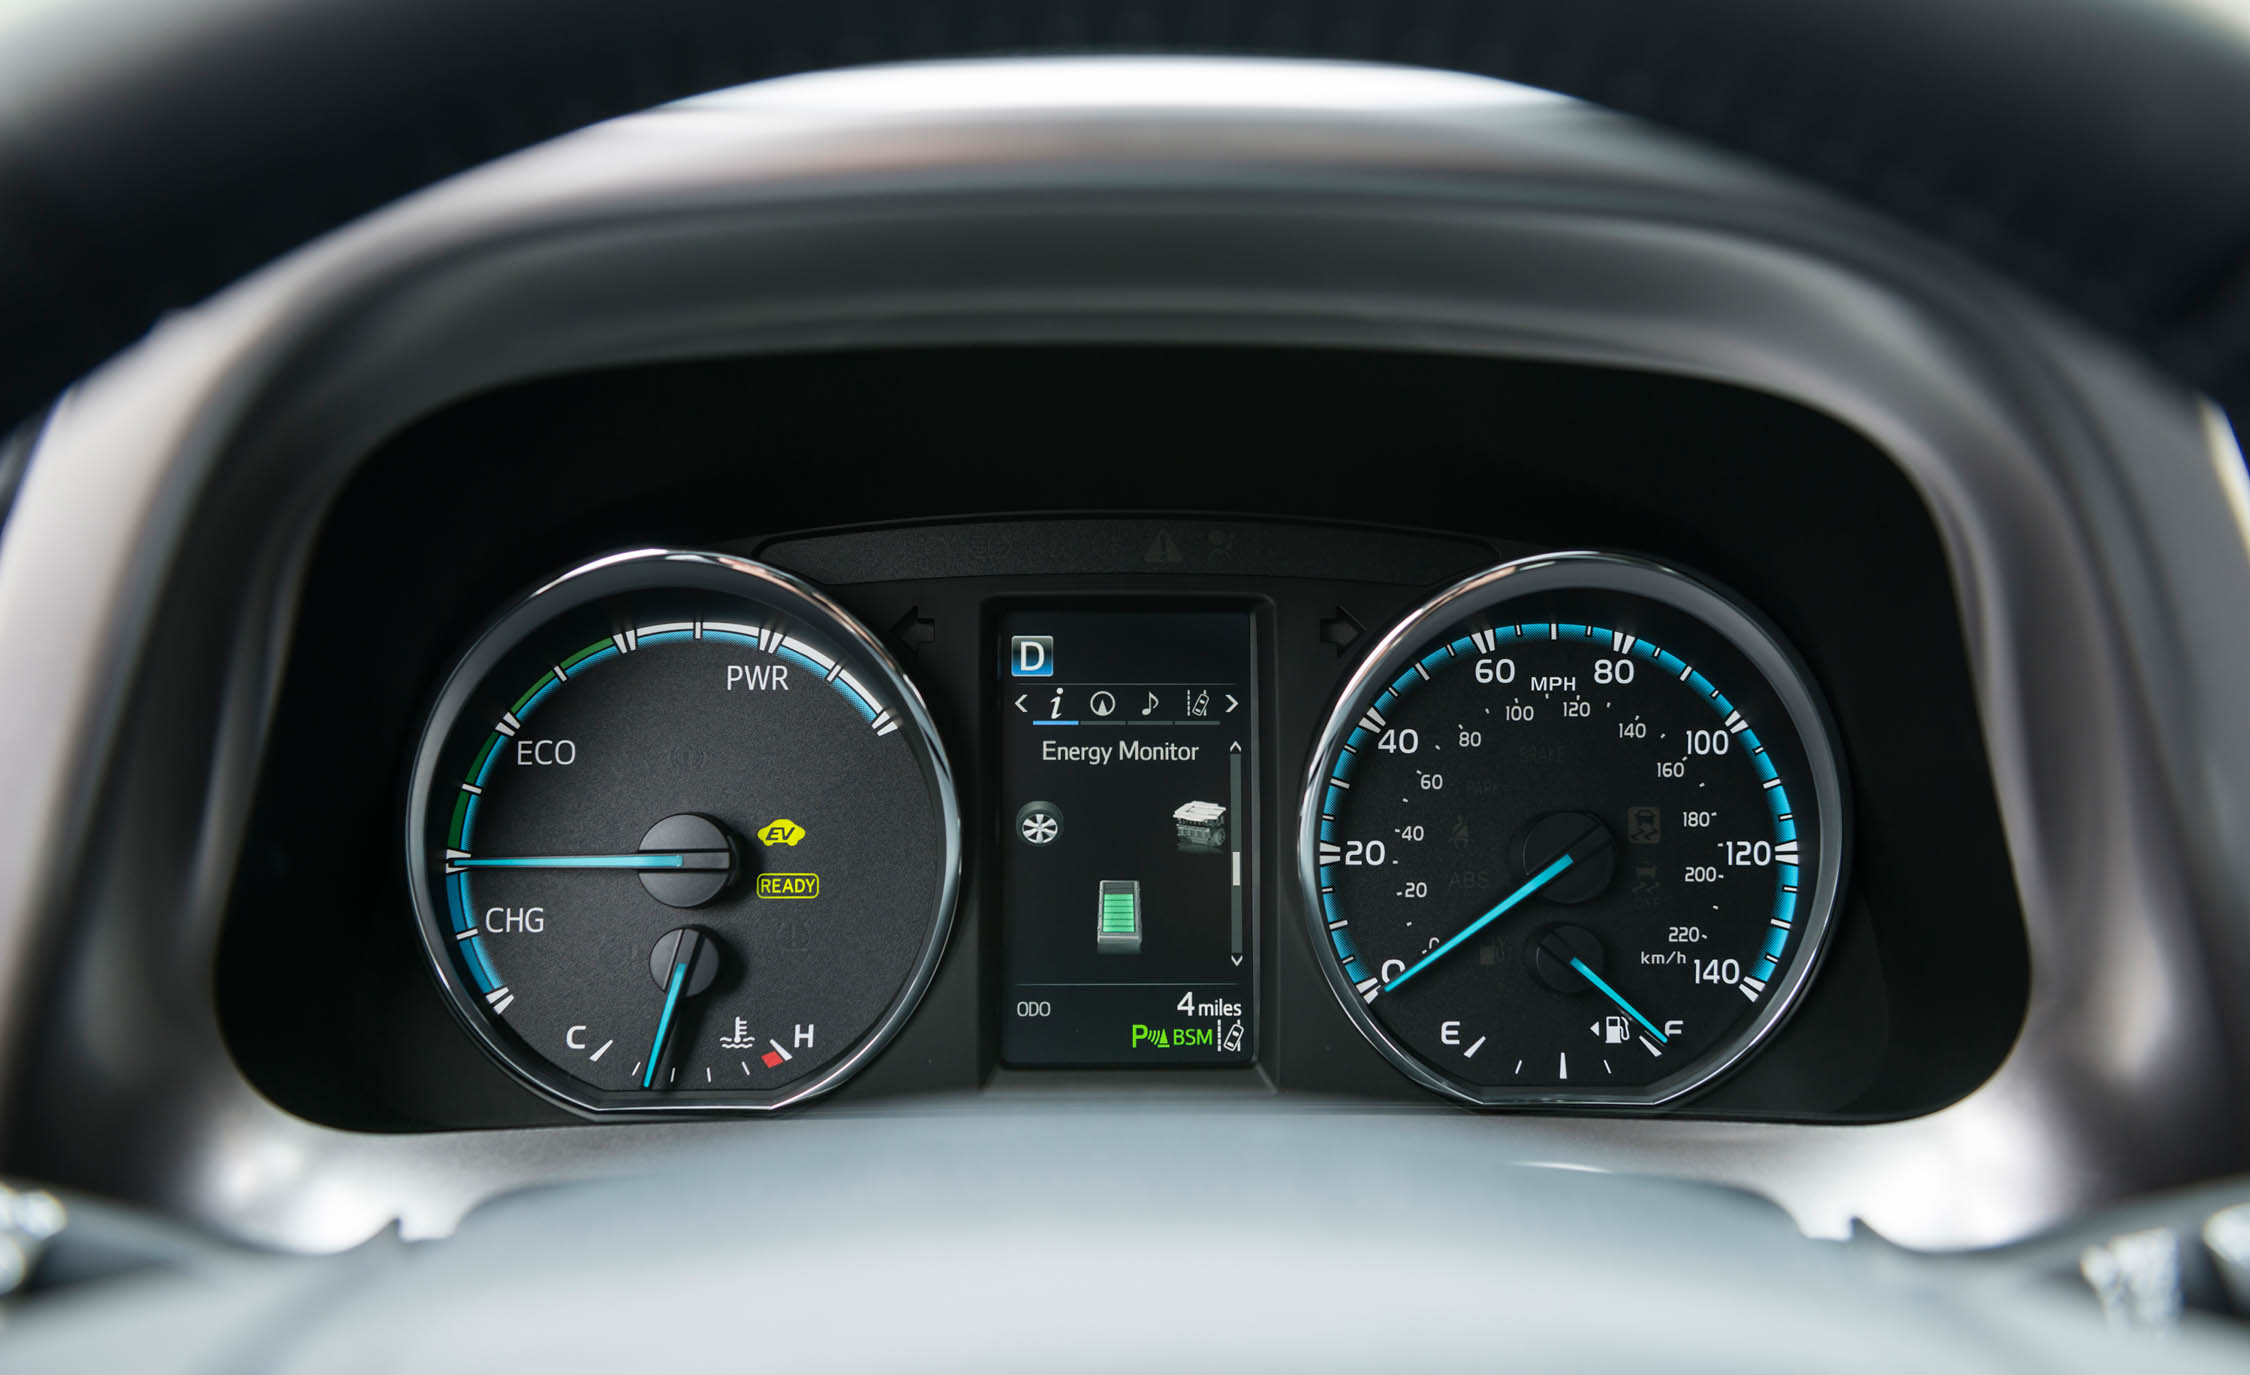 2016 Toyota Rav4 Hybrid Interior Speedometer (Photo 21 of 26)